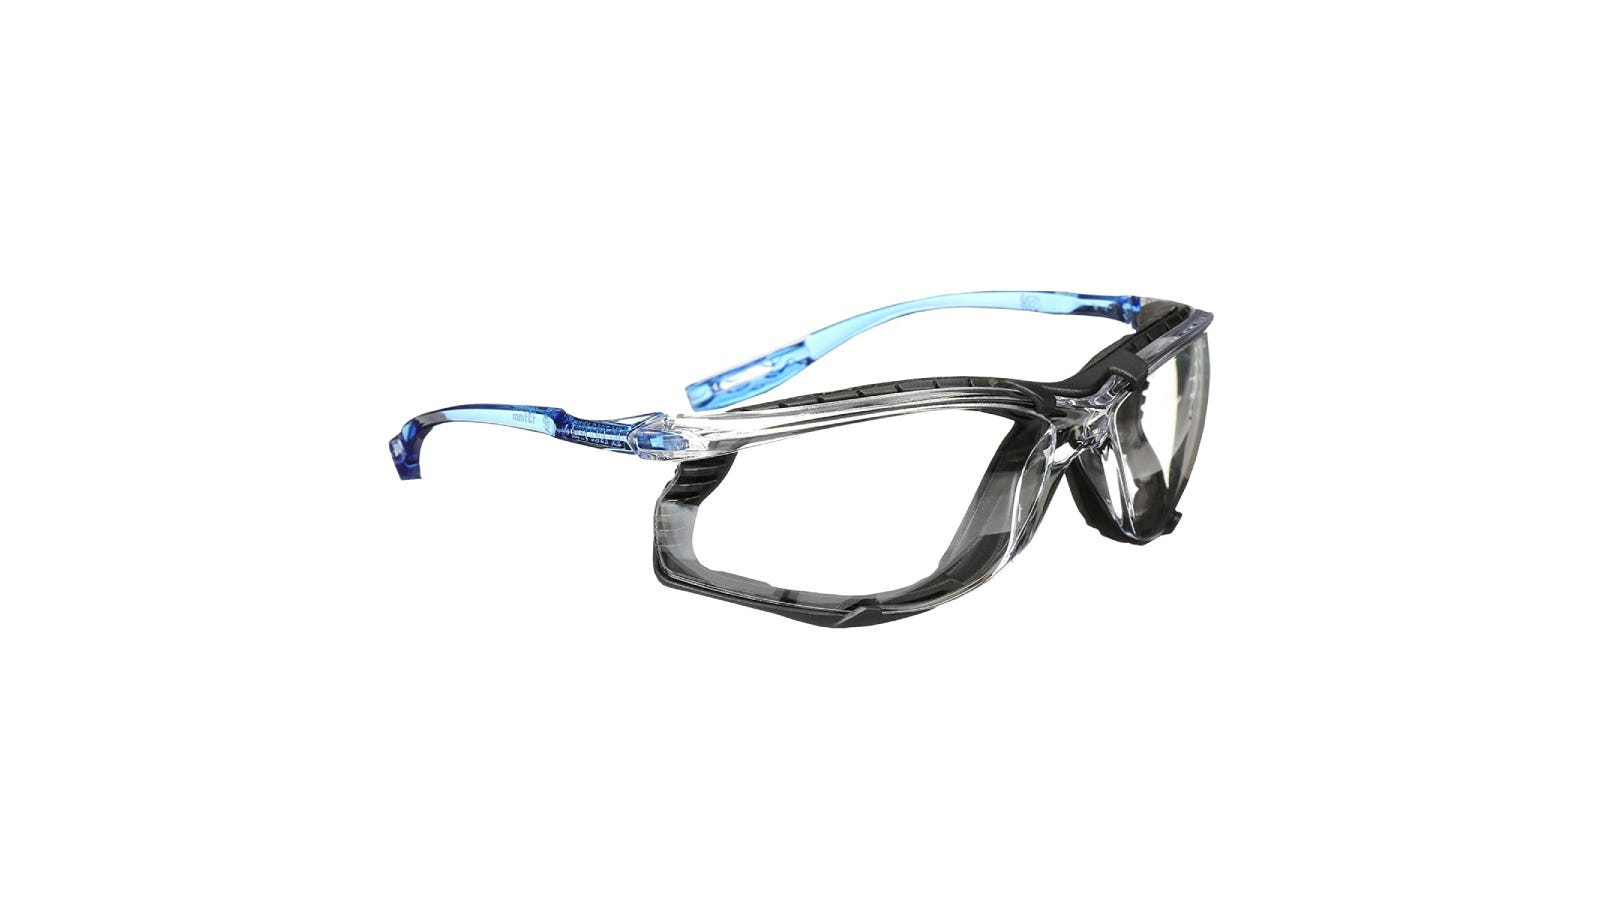 clear, black, and blue safety glasses